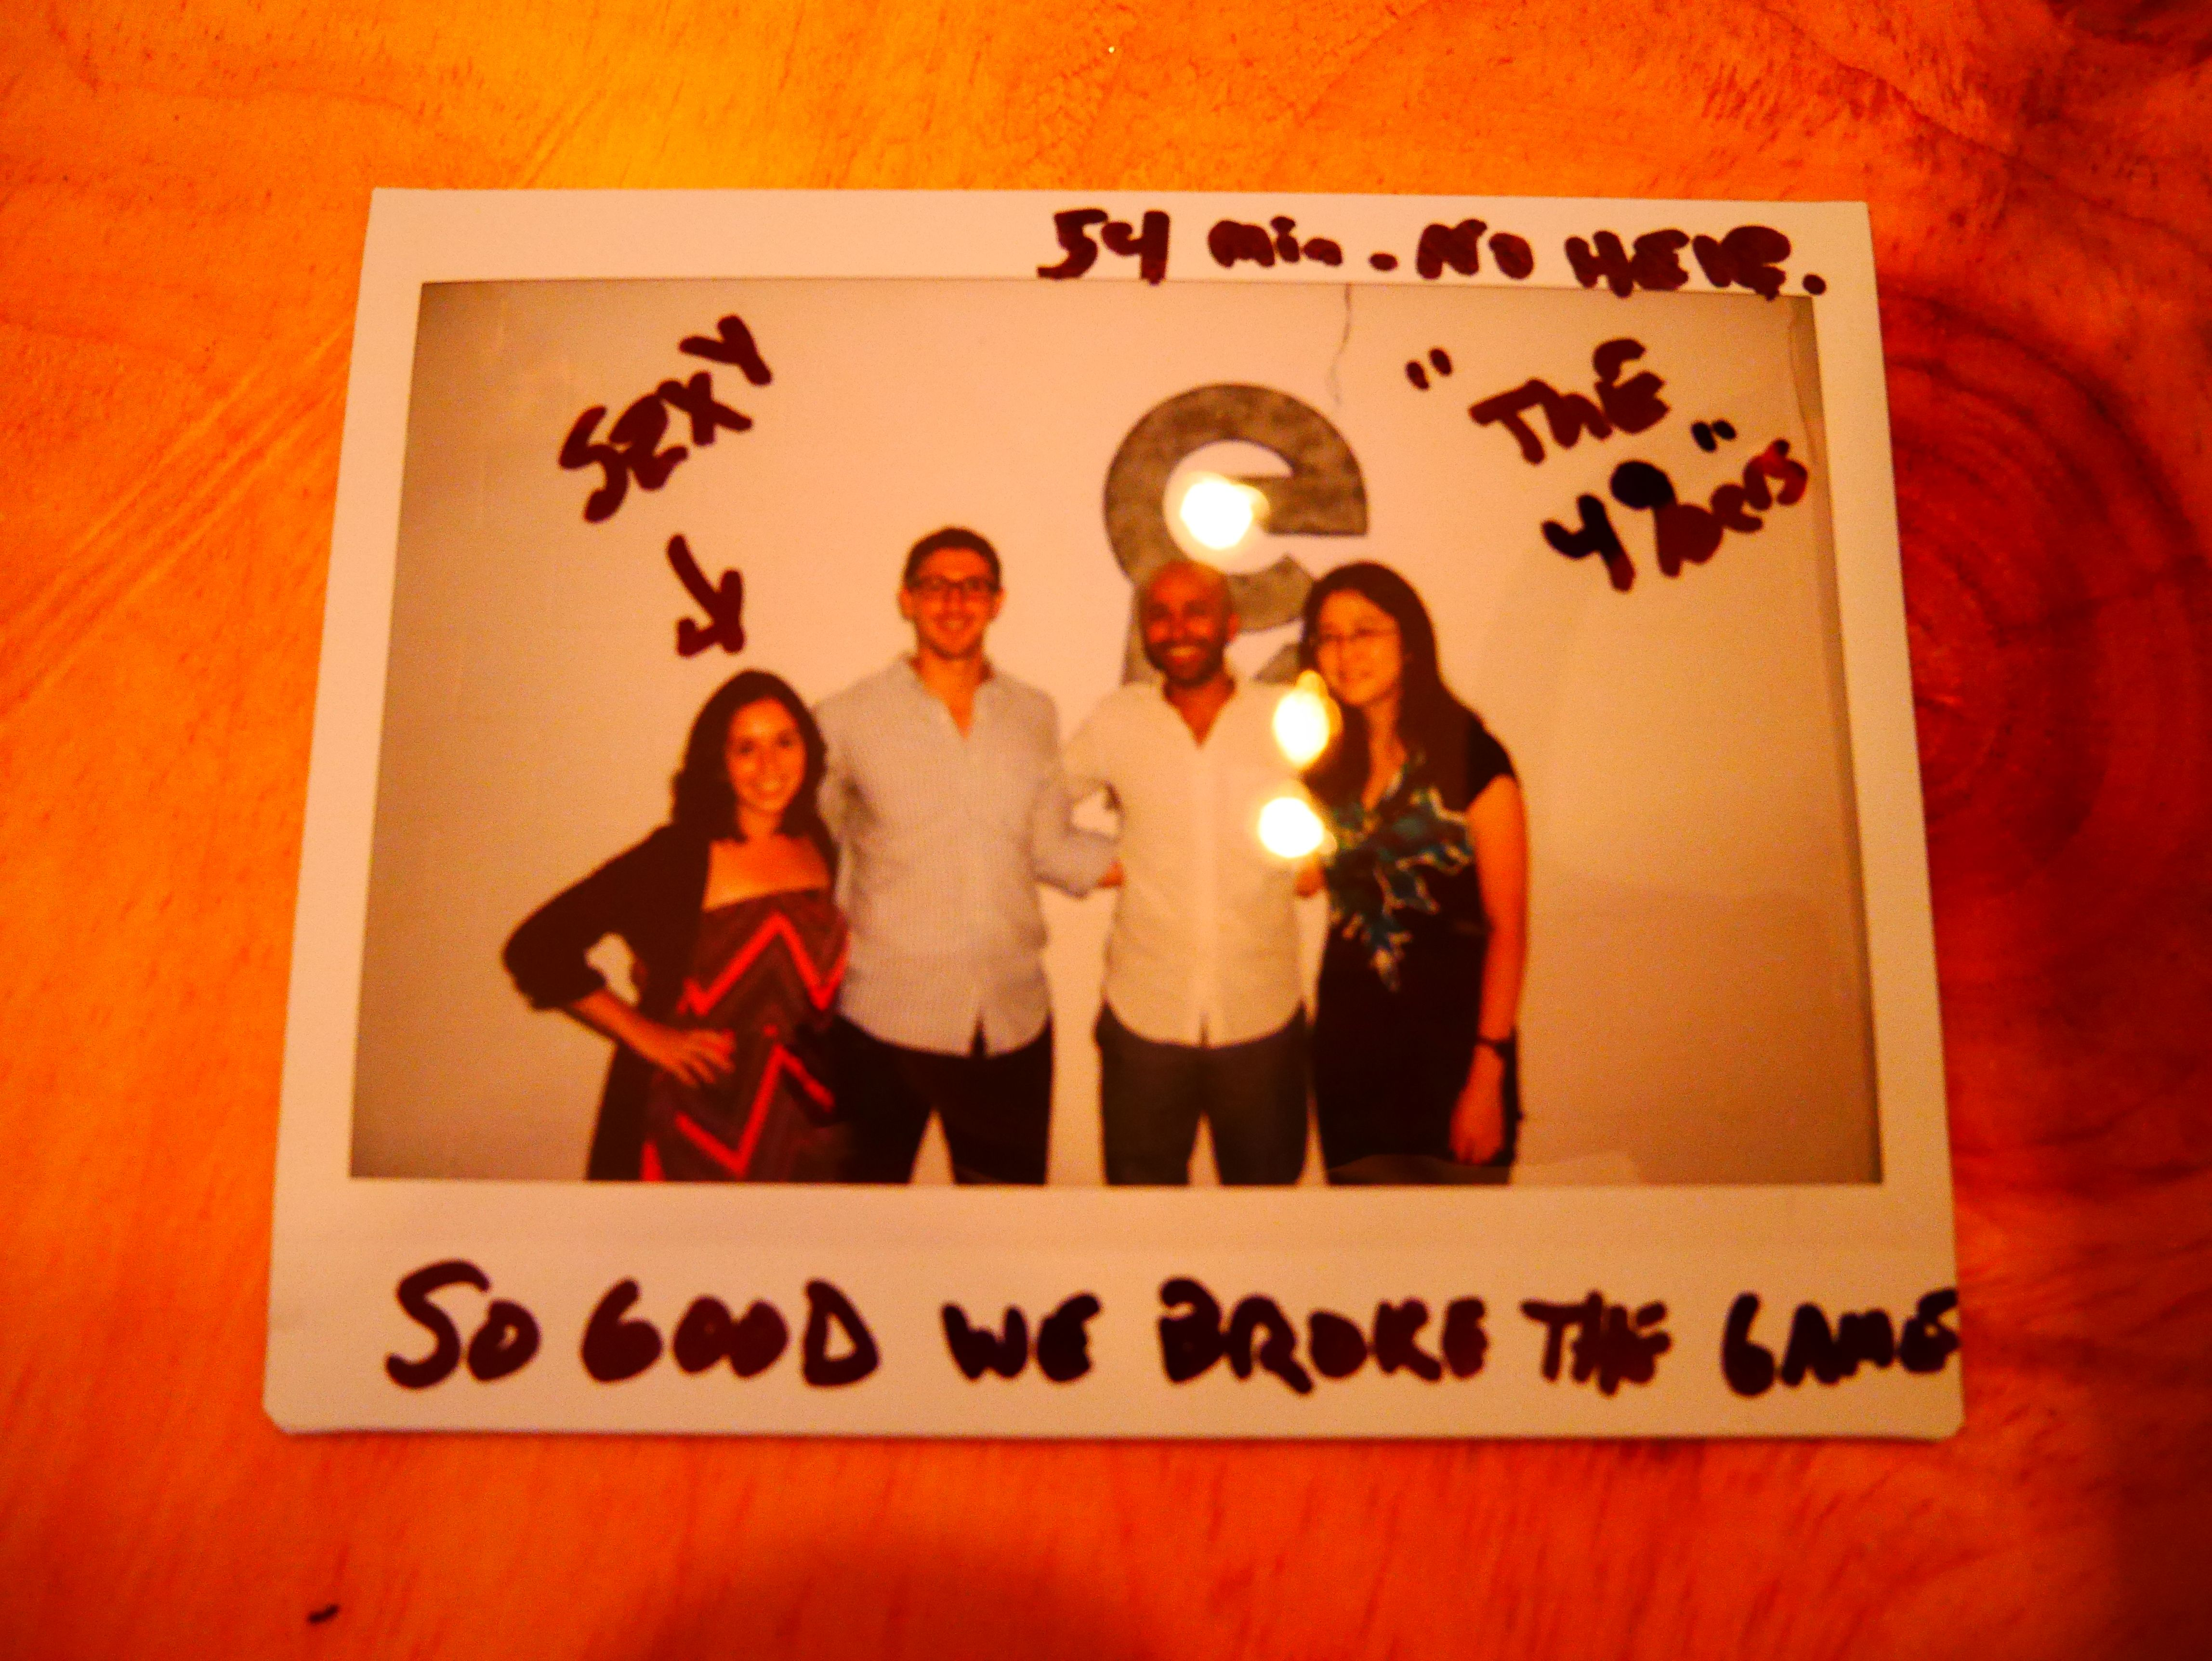 August 19th 2015 a group of NYAC members successfully escaped